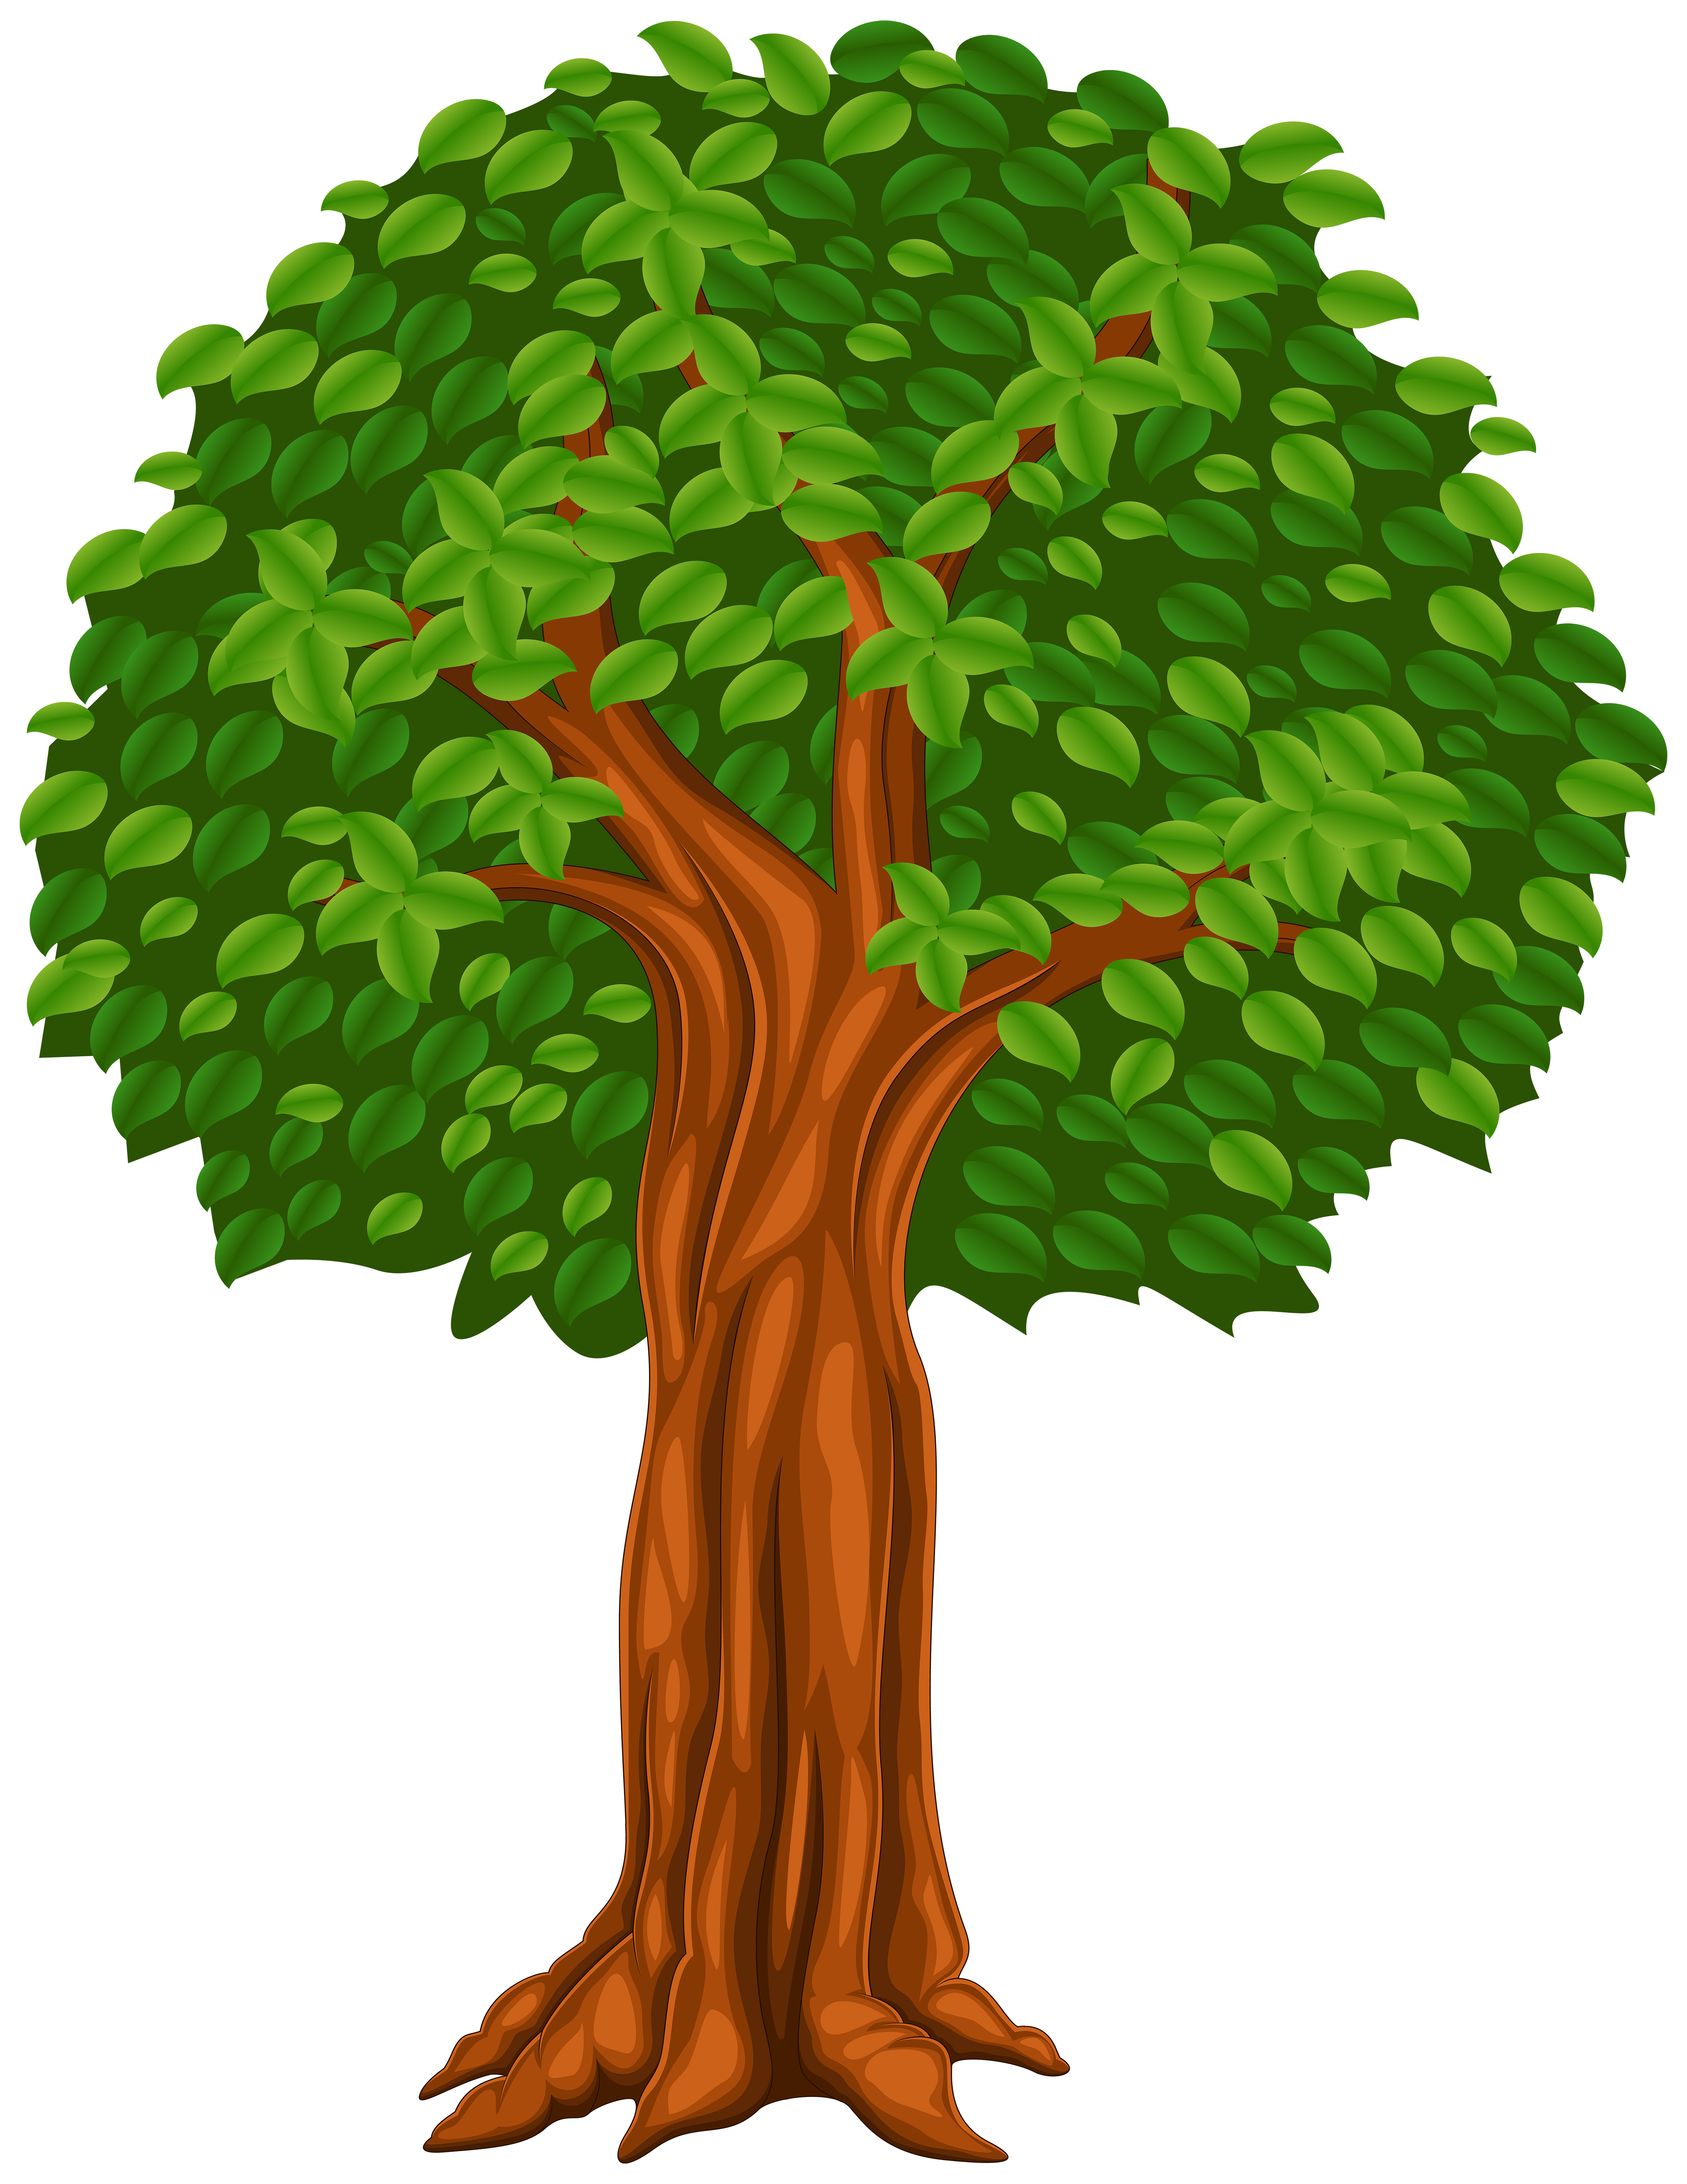 Tree Cartoon Png Clip Art Image Gallery Yopriceville High Quality Images And Transparent Png Free Clipart Cartoons Png Art Drawings For Kids Tree Art